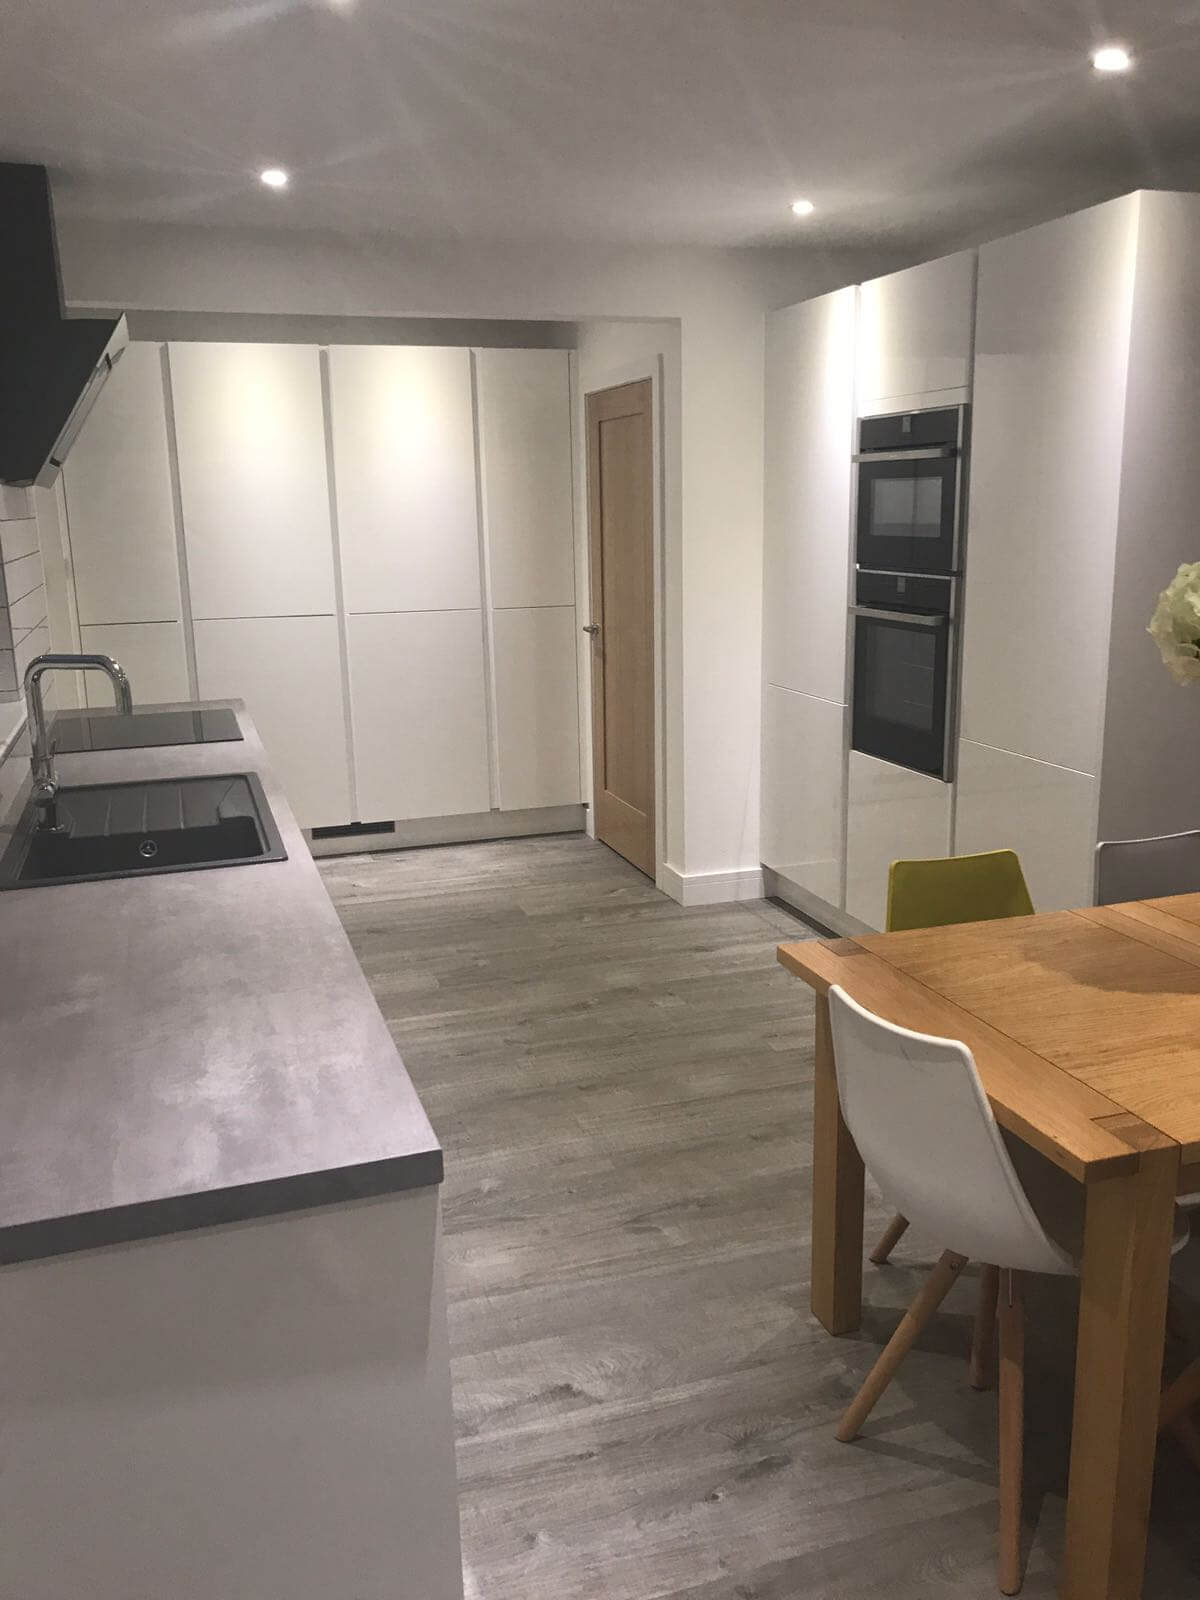 Kitchen, utility and dining room alterations